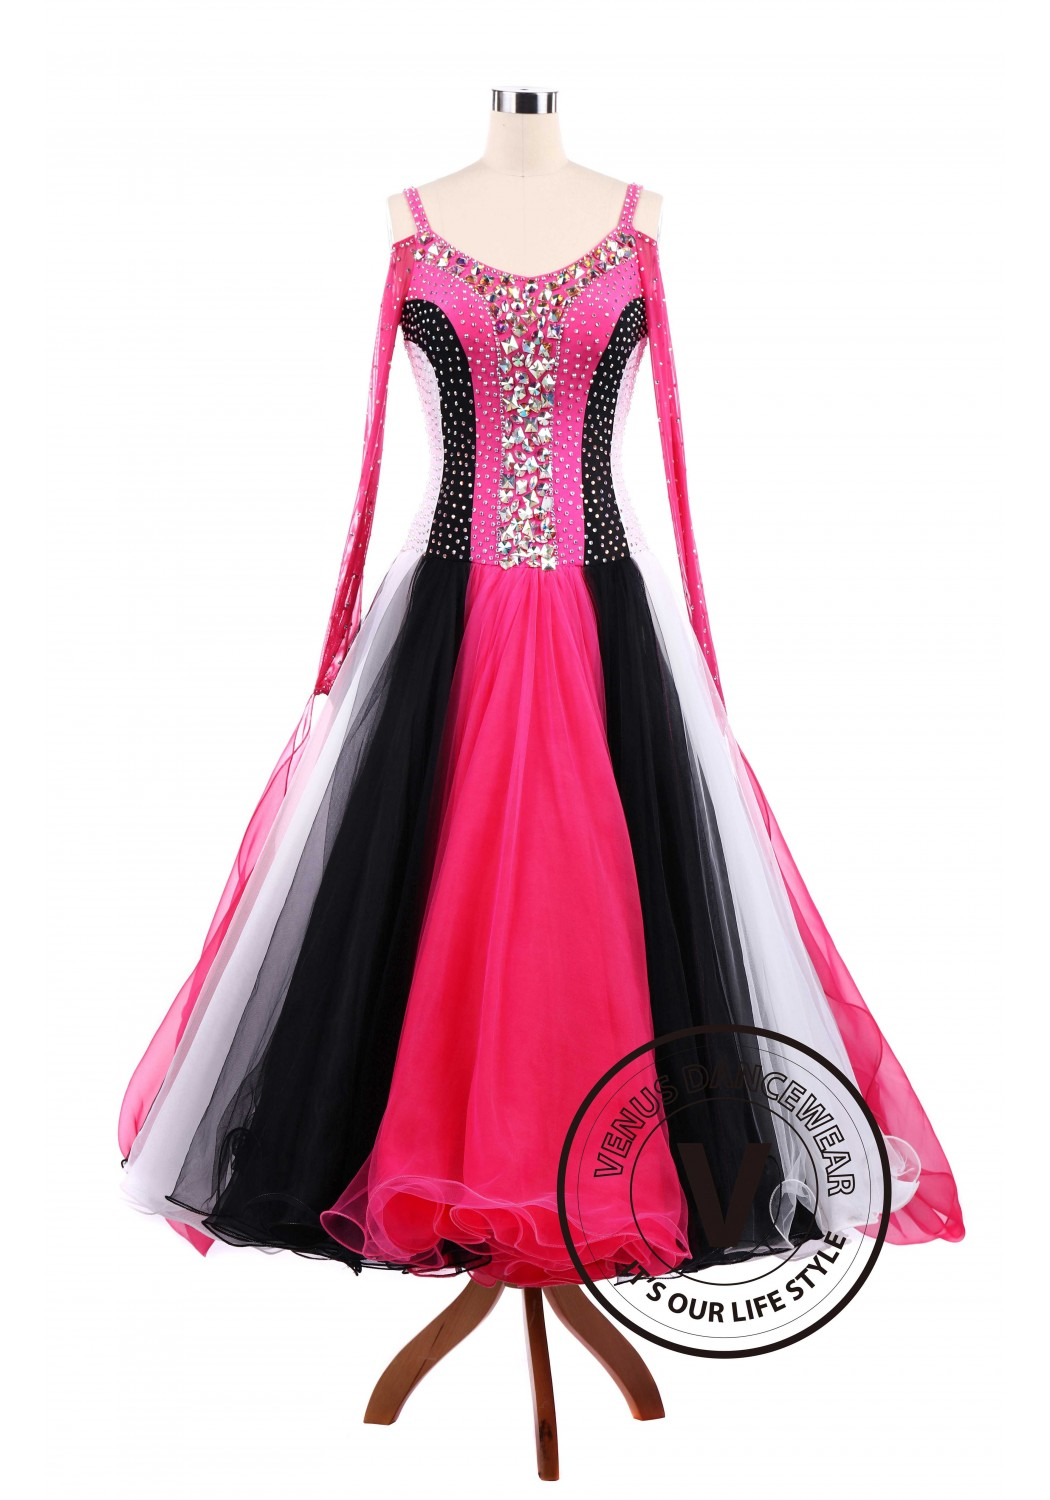 Rose Tricolore Standard Ballroom Tango Waltz Competition Dance Dress